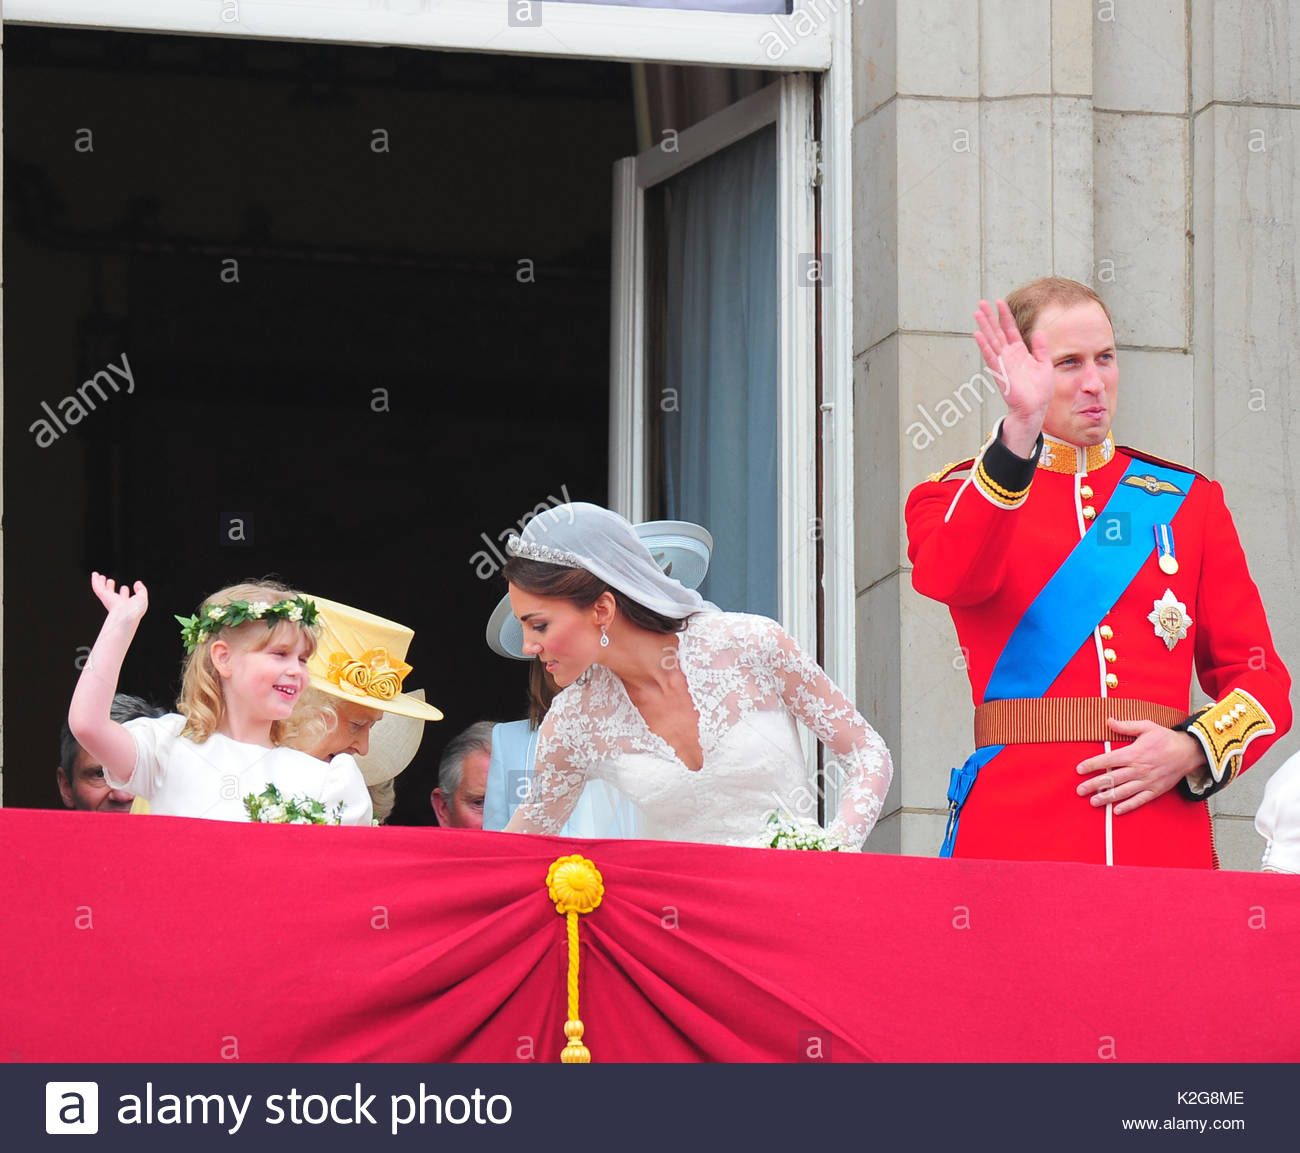 Queen elizabeth wedding balcony stock photos queen for Queens wedding balcony